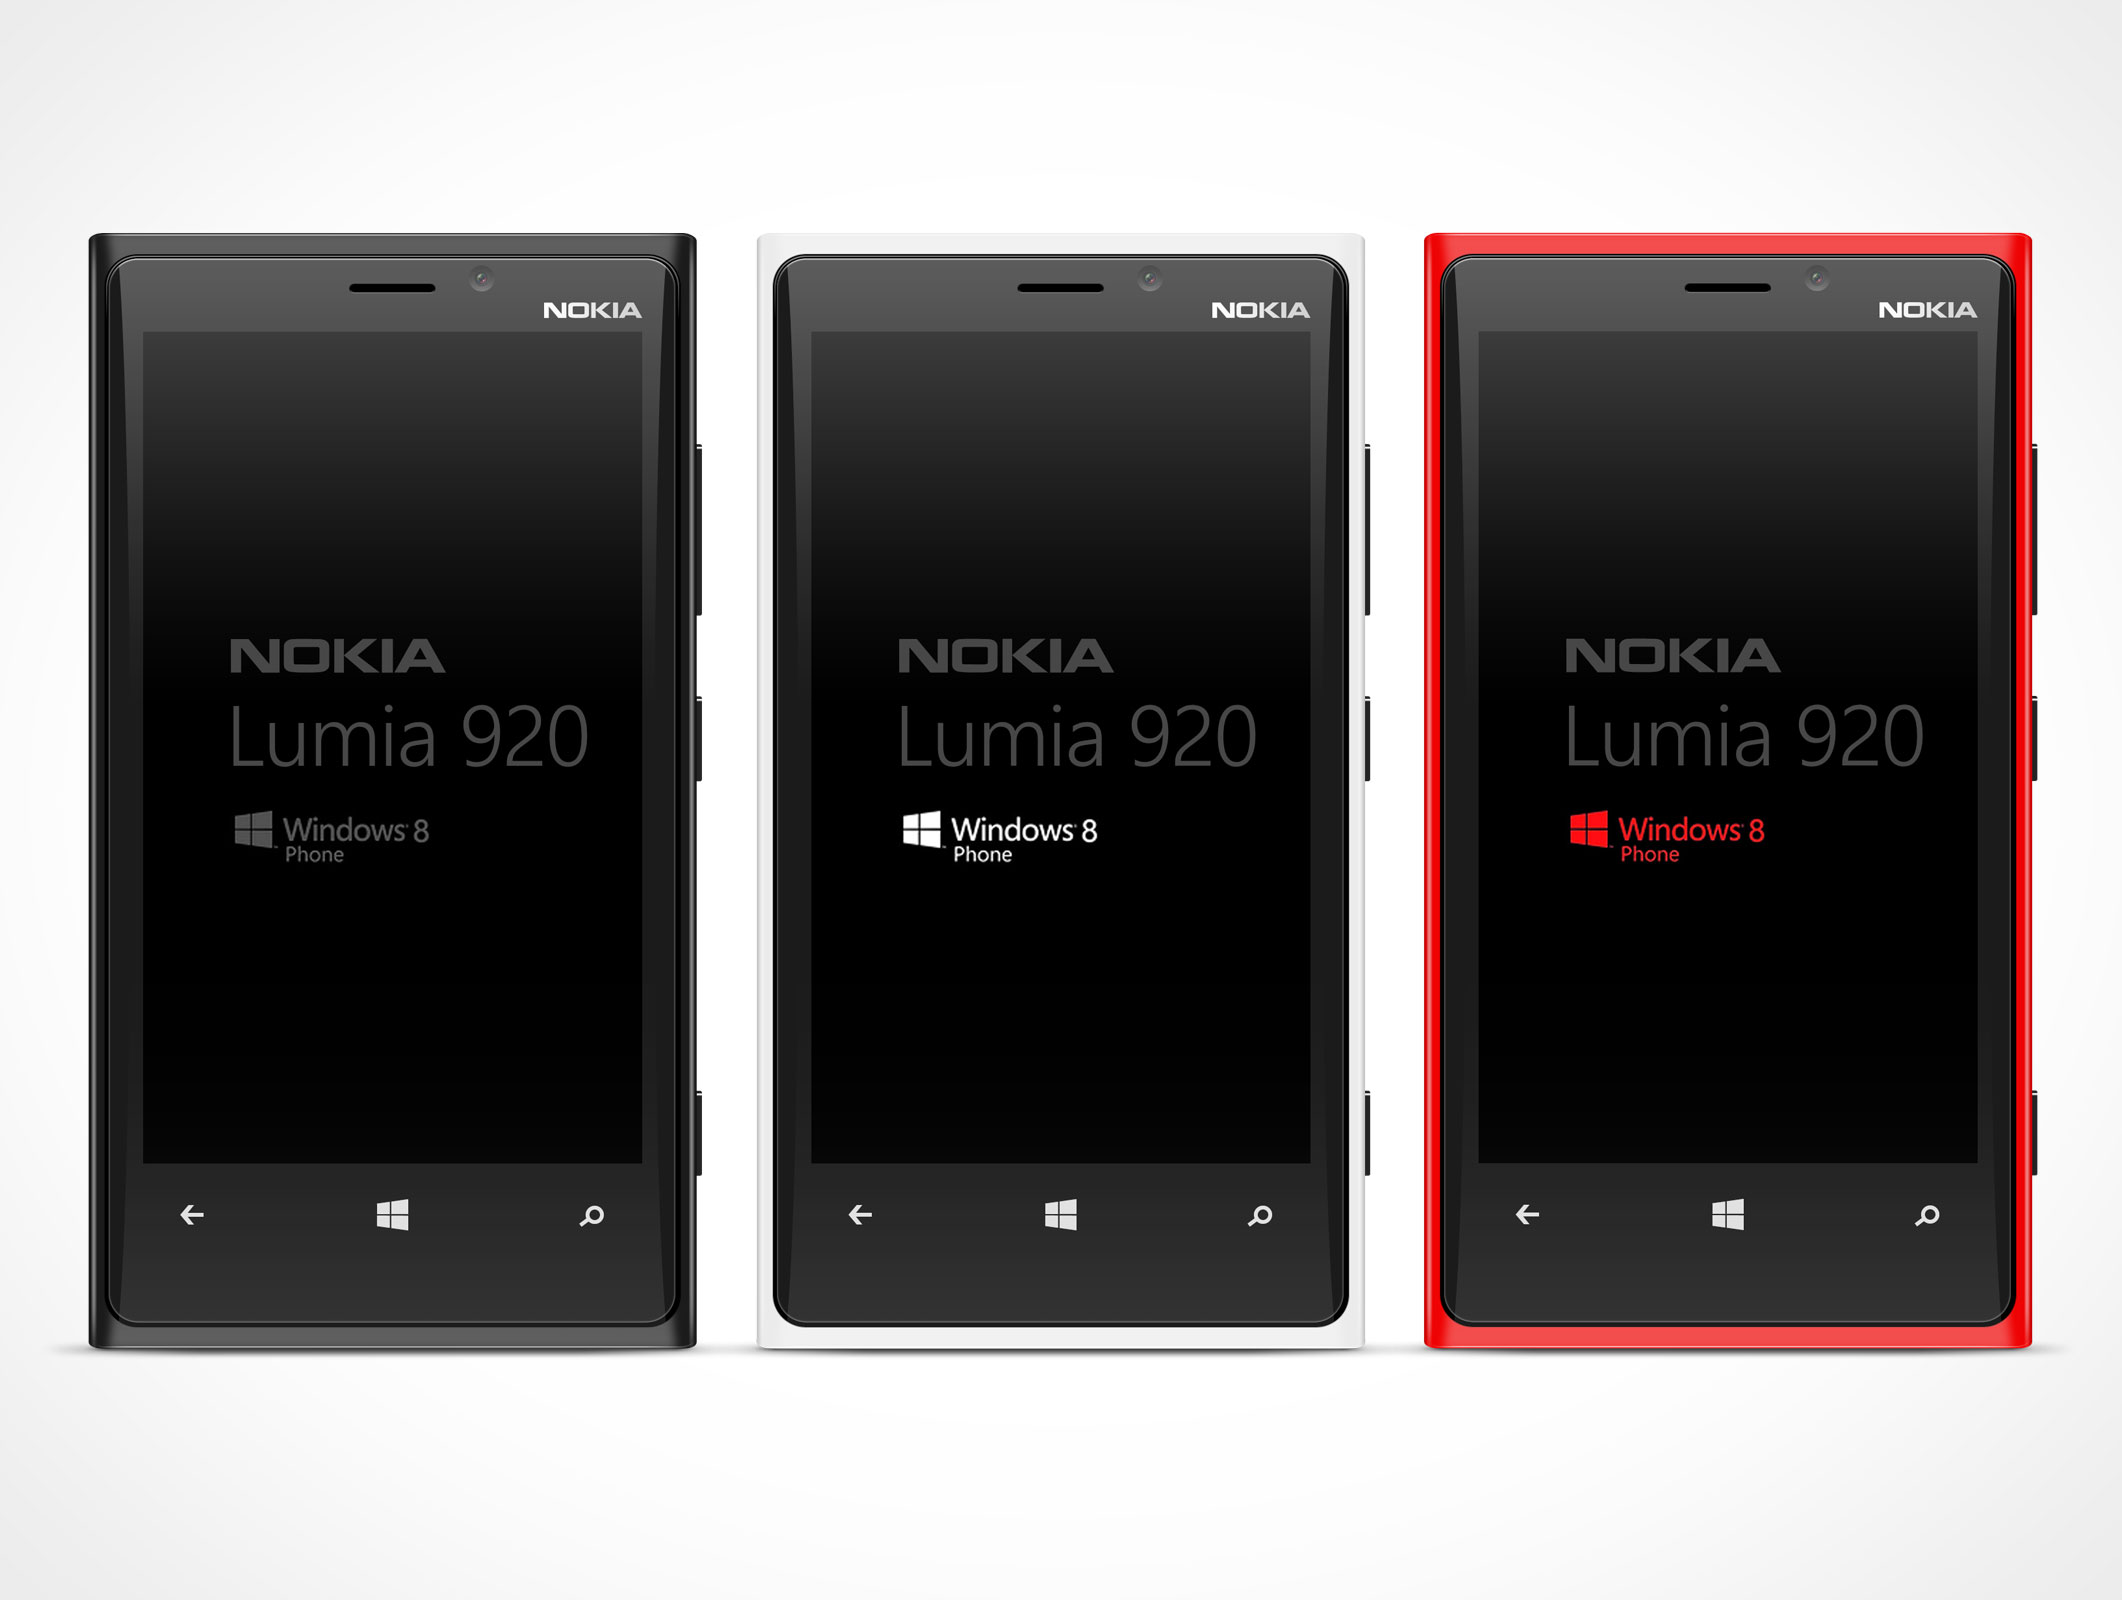 NOKIA Lumina PSD Mockup Template Windows Metro Smartphone